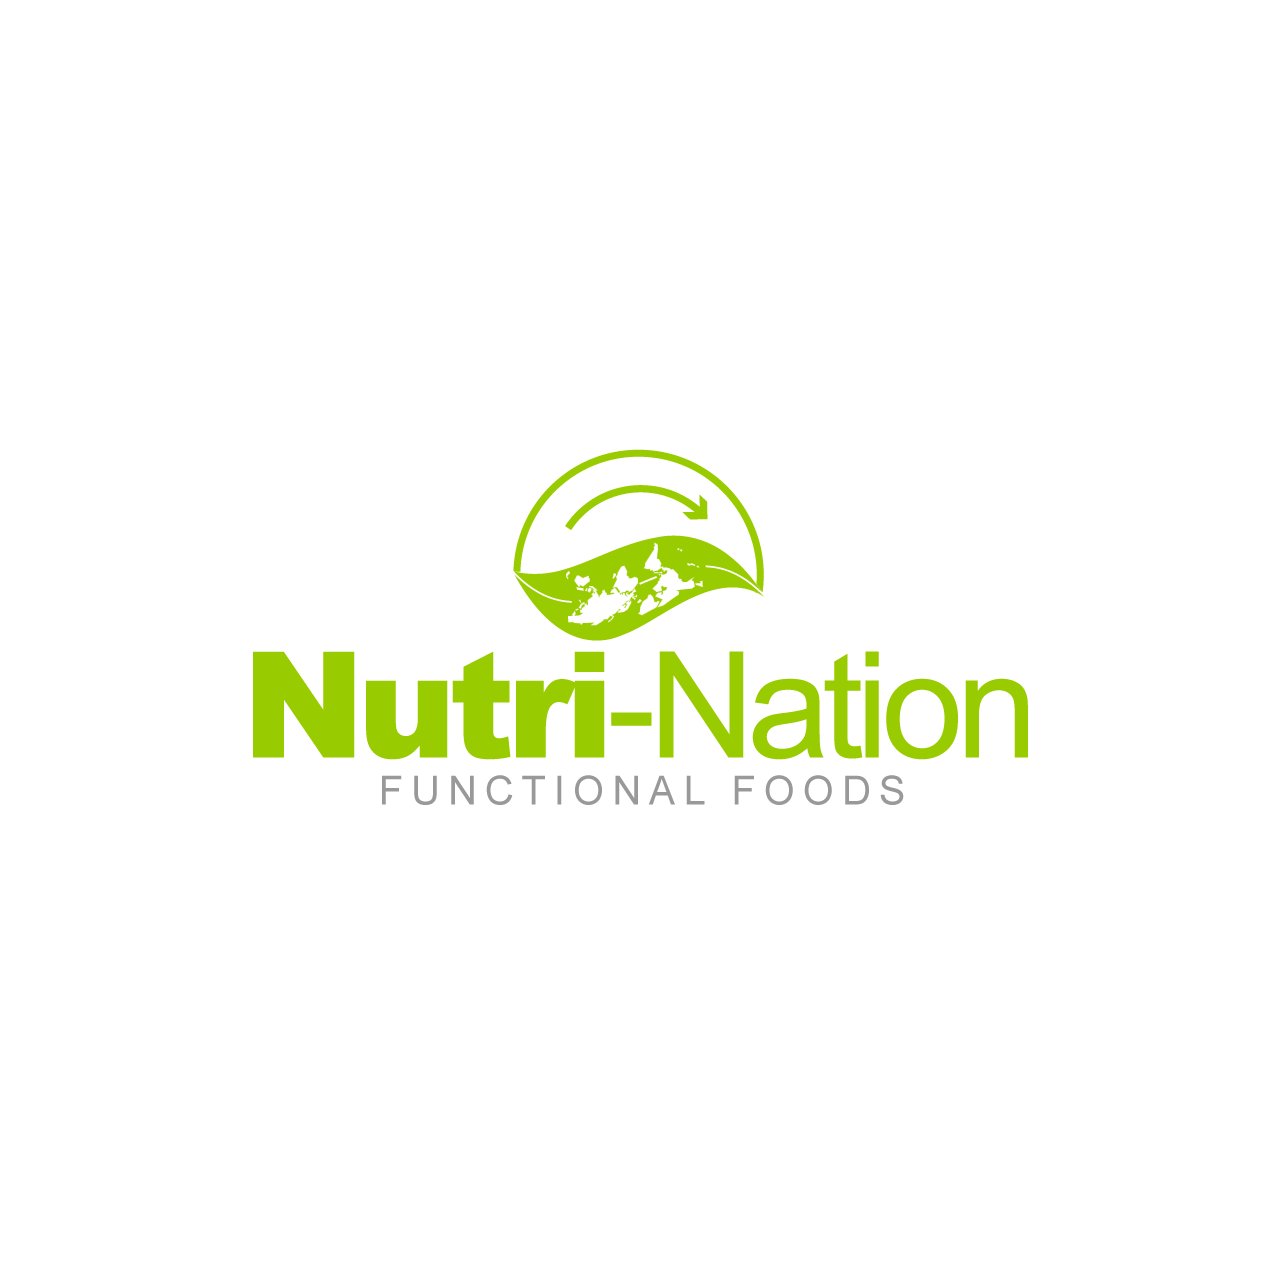 Logo Design by umxca - Entry No. 145 in the Logo Design Contest Nutri-Nation Functional Foods Logo.